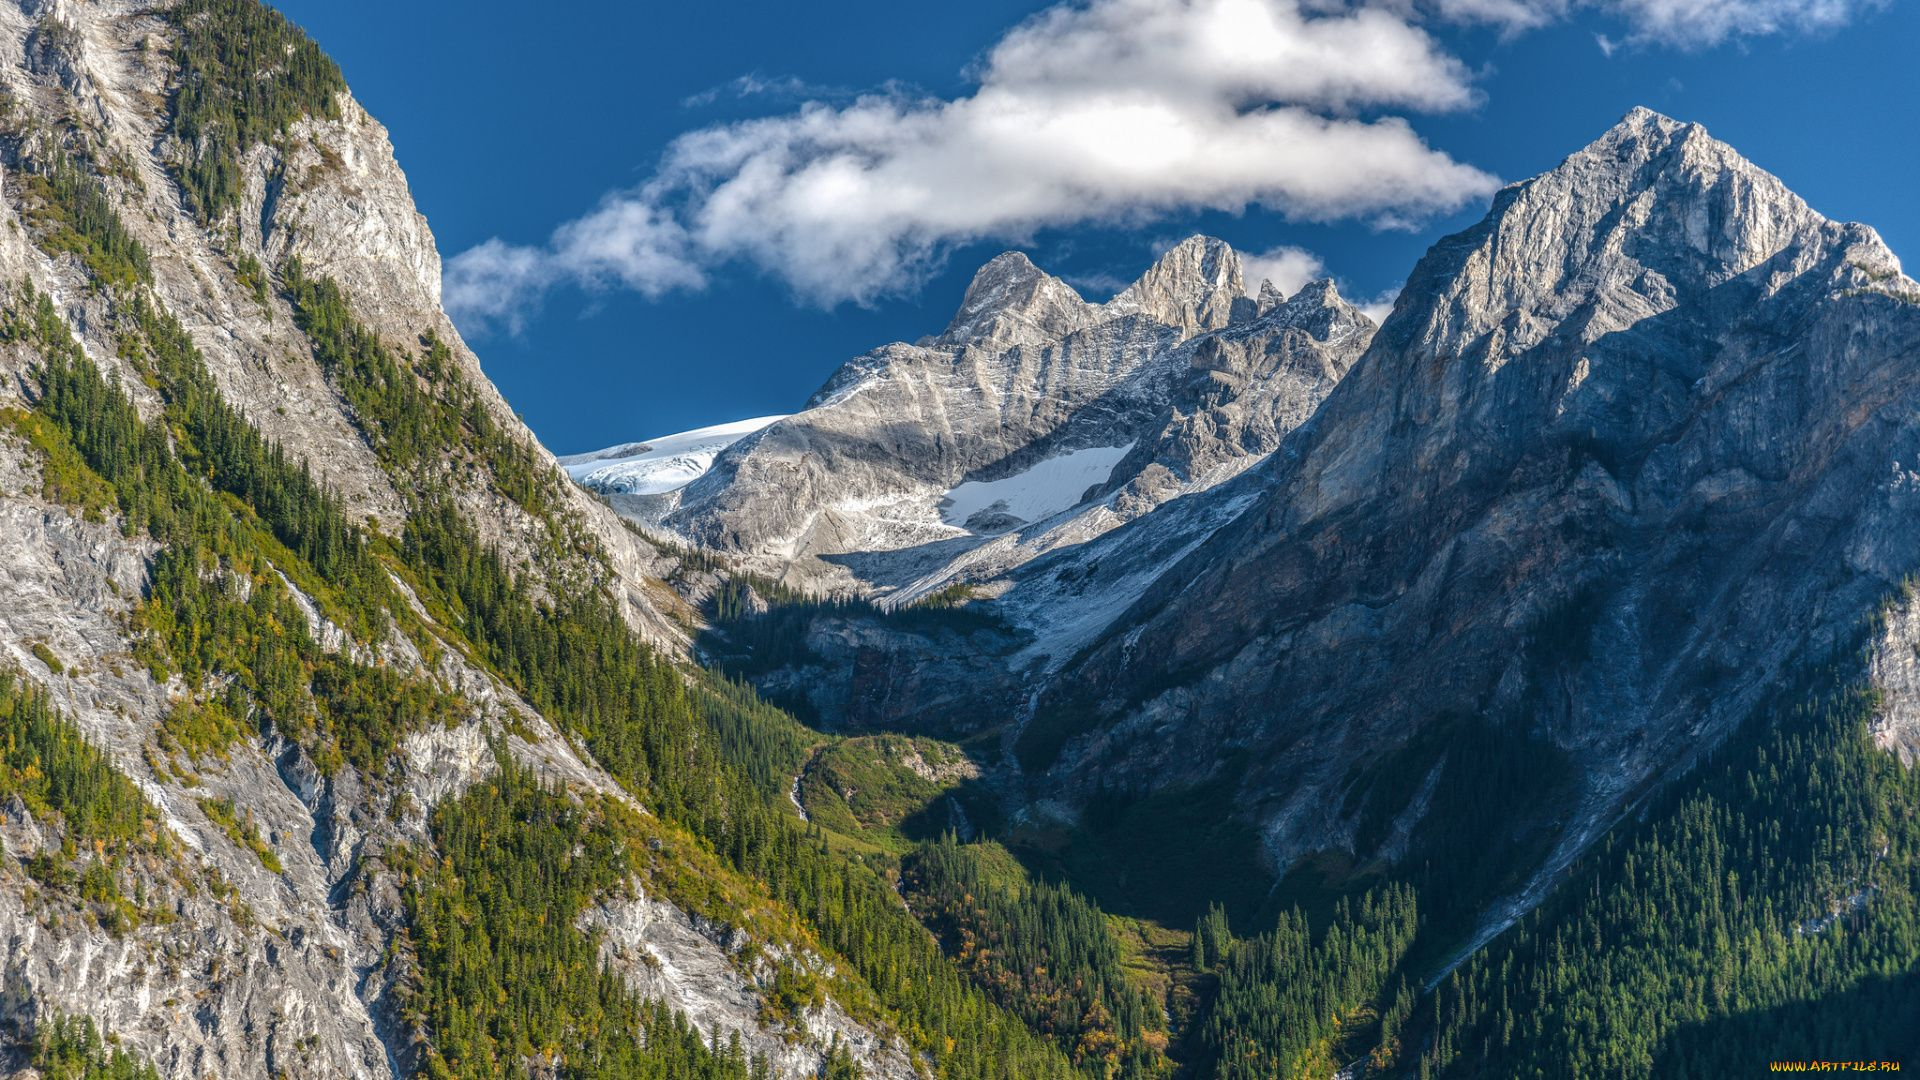 Rocky Mountain picture wallpaper